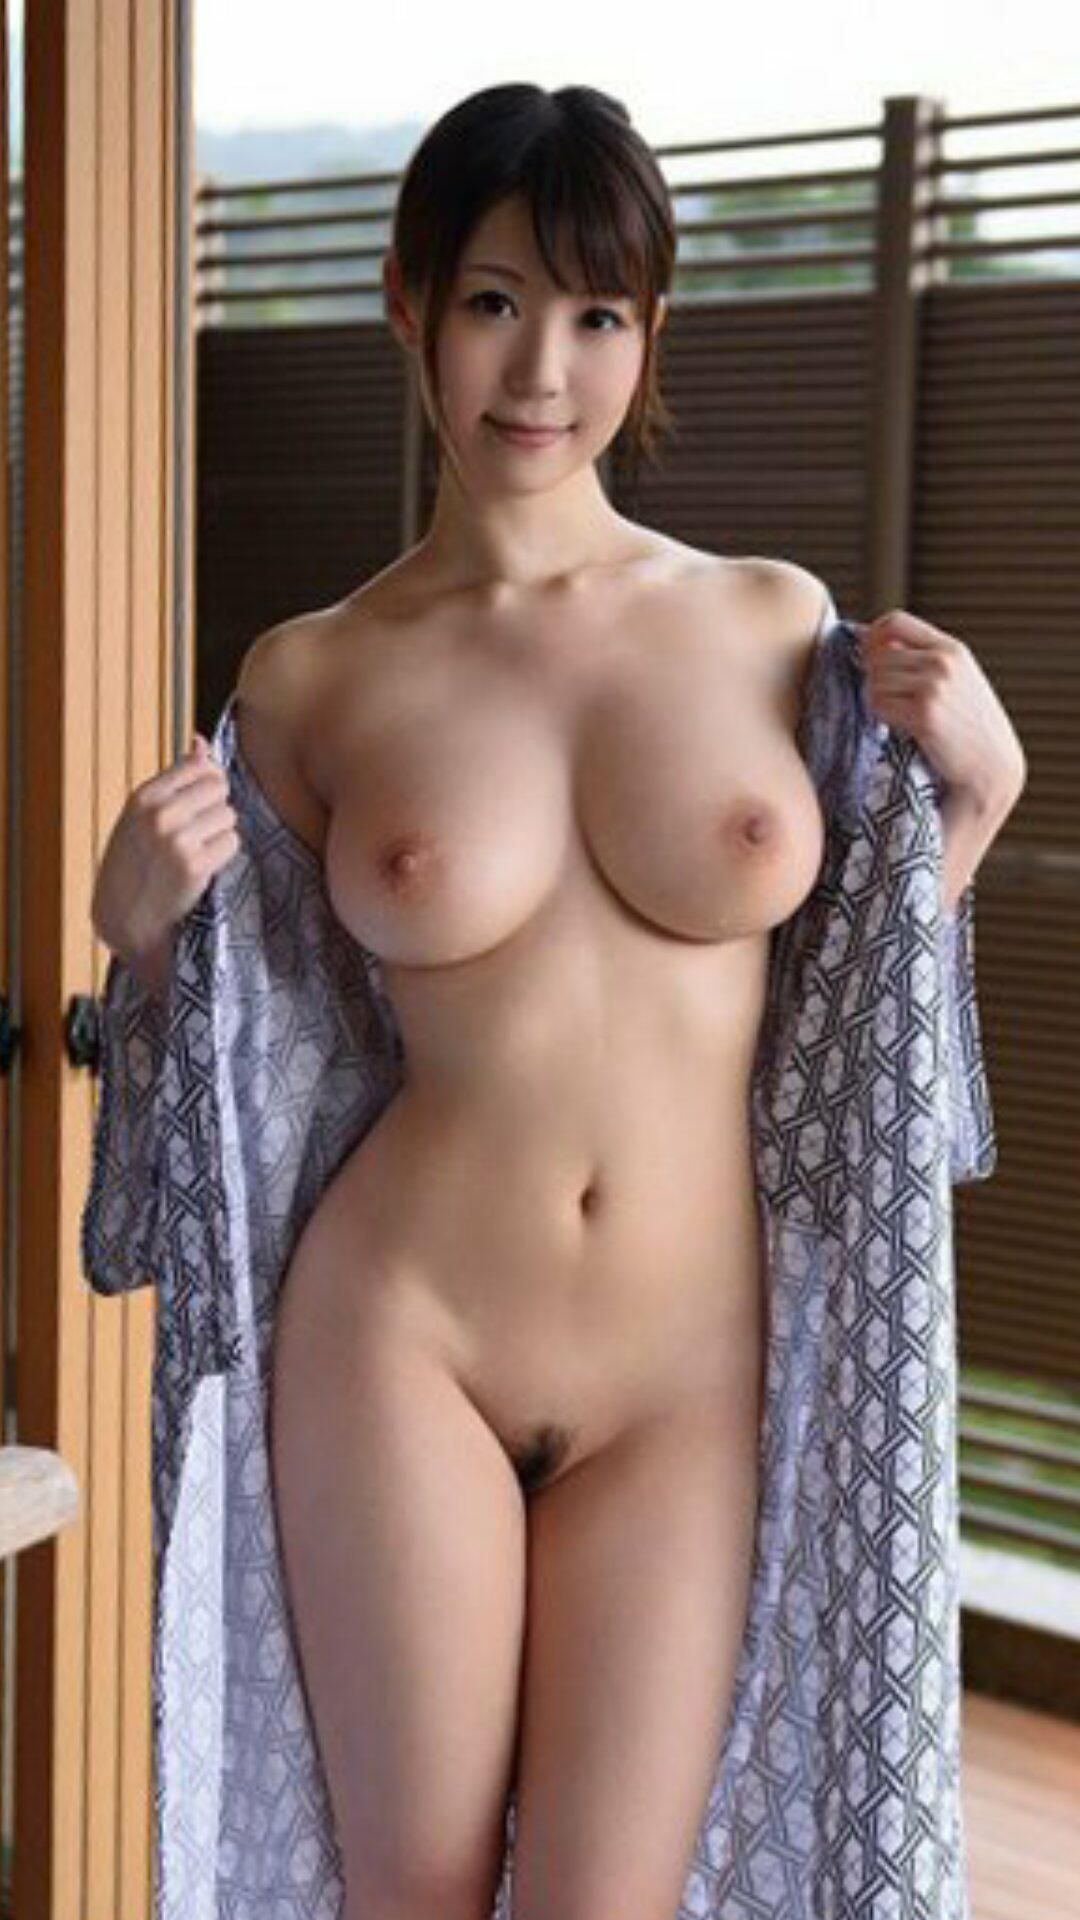 Korean nude model sua see special natural perky breasts